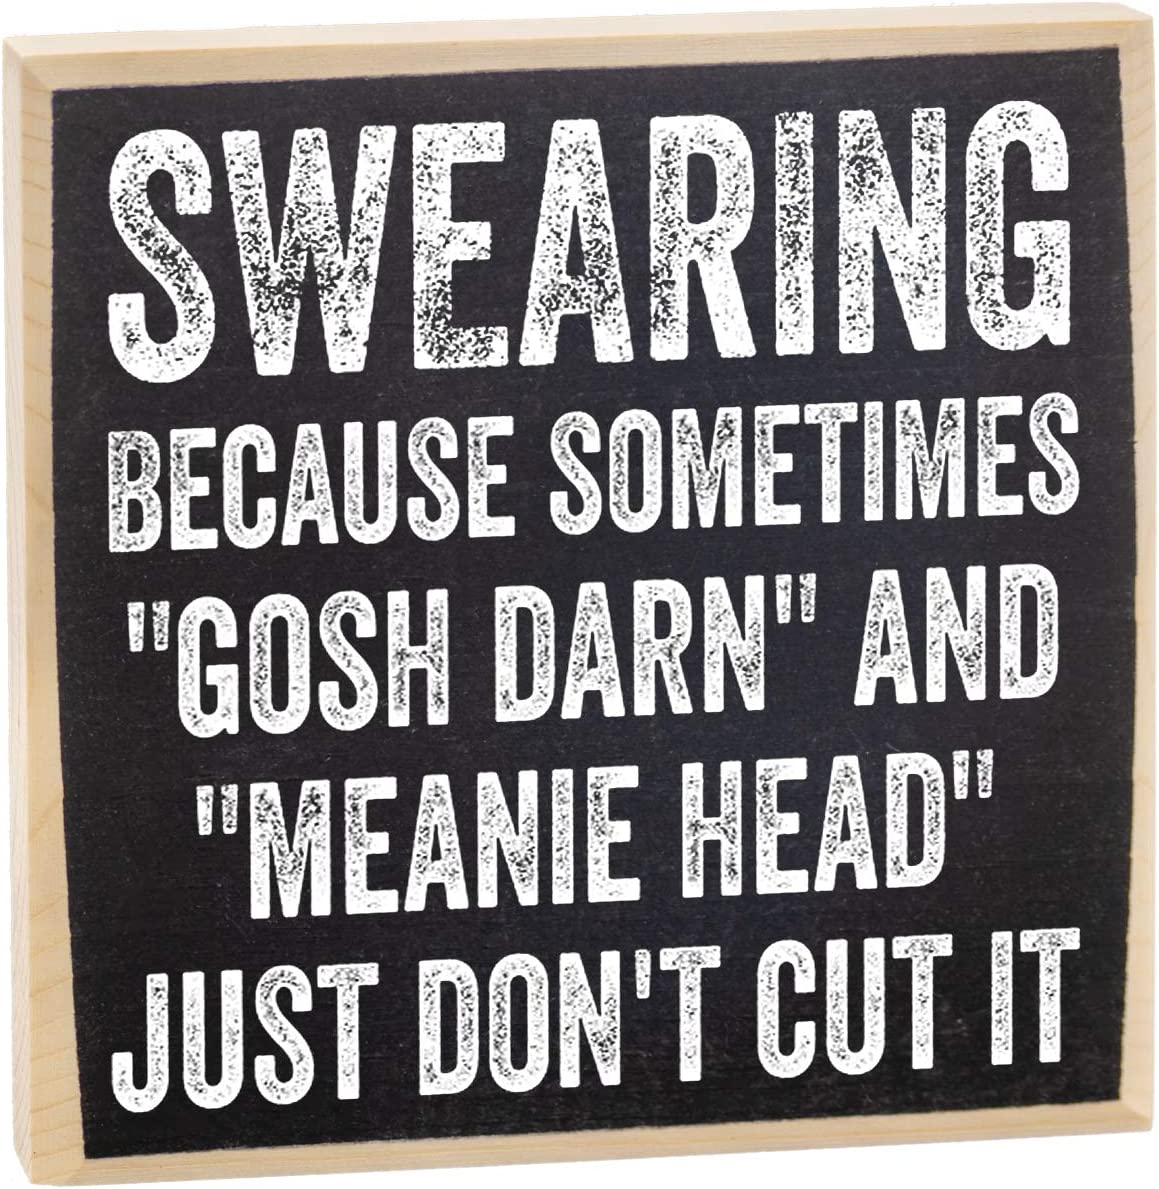 Swearing, Because Sometimes Gosh Darn and Meanie Head Just Don't Cut It - Rustic Wooden Sign - Makes a Great Funny Gift Under $15!